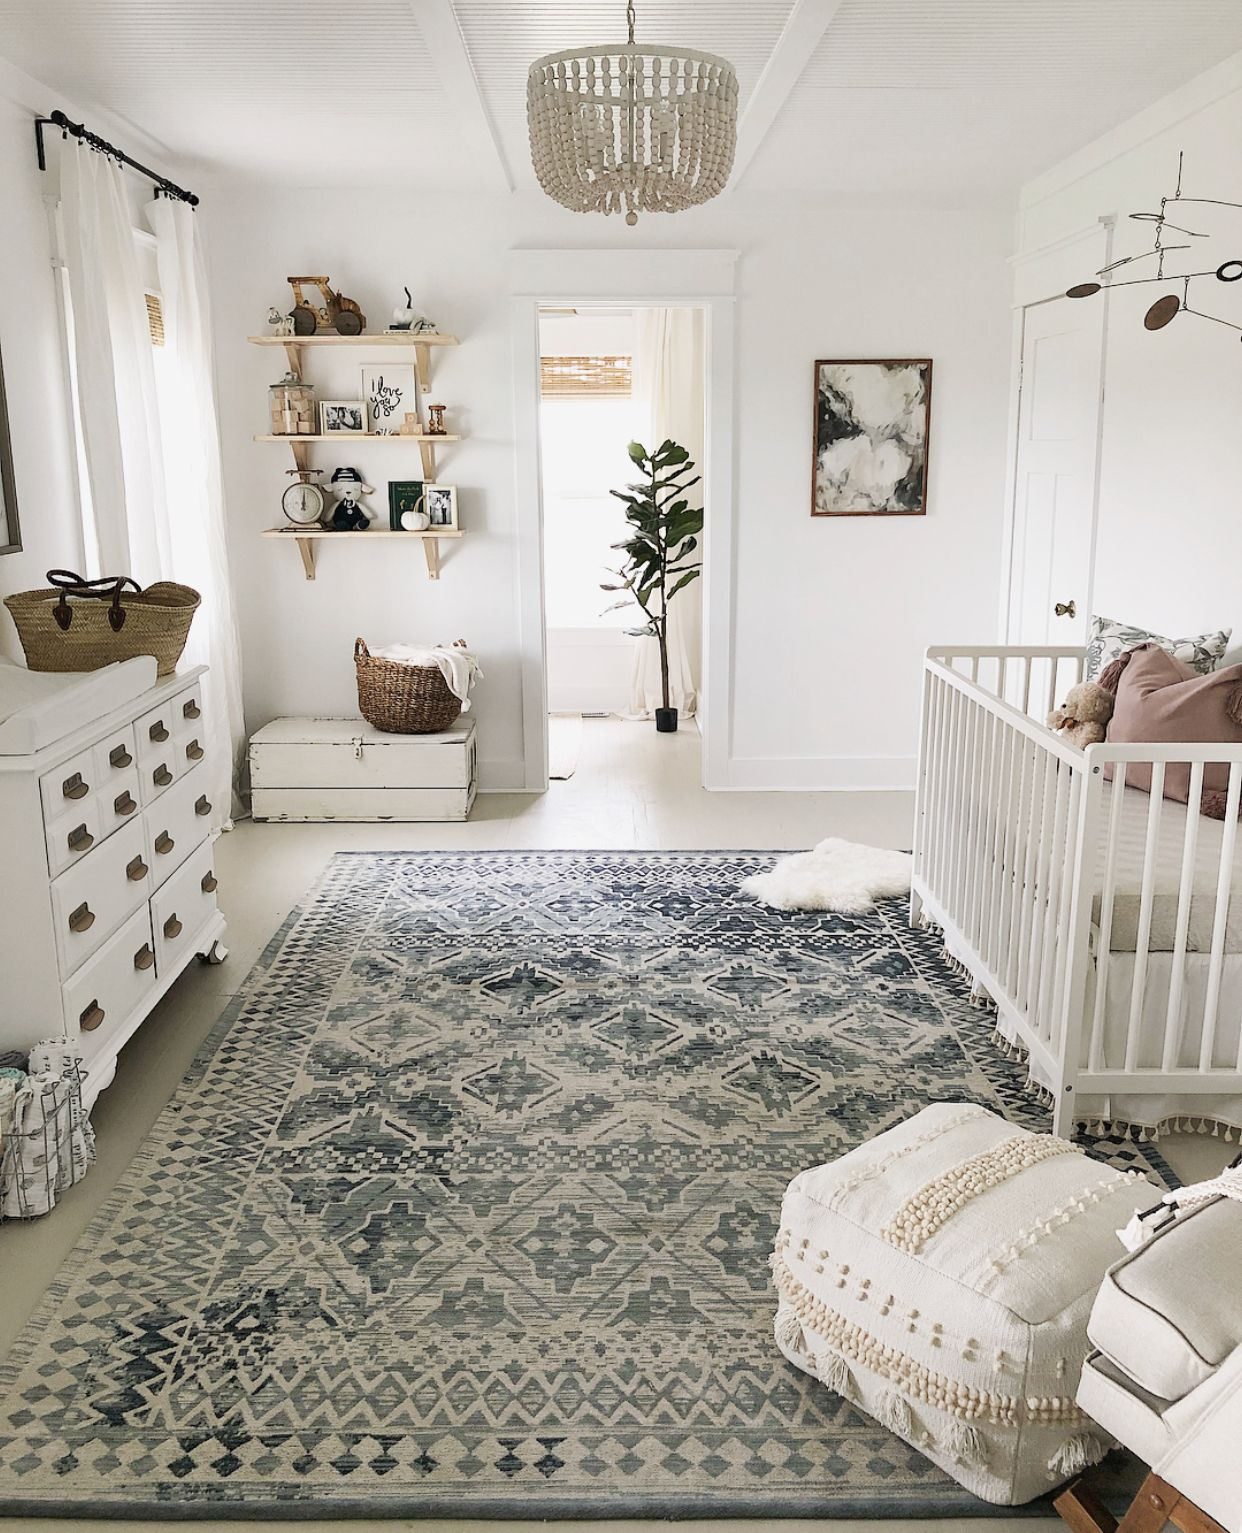 Pin by PAGE on Babyzimmer Inspirationen  Baby room decor, Girl